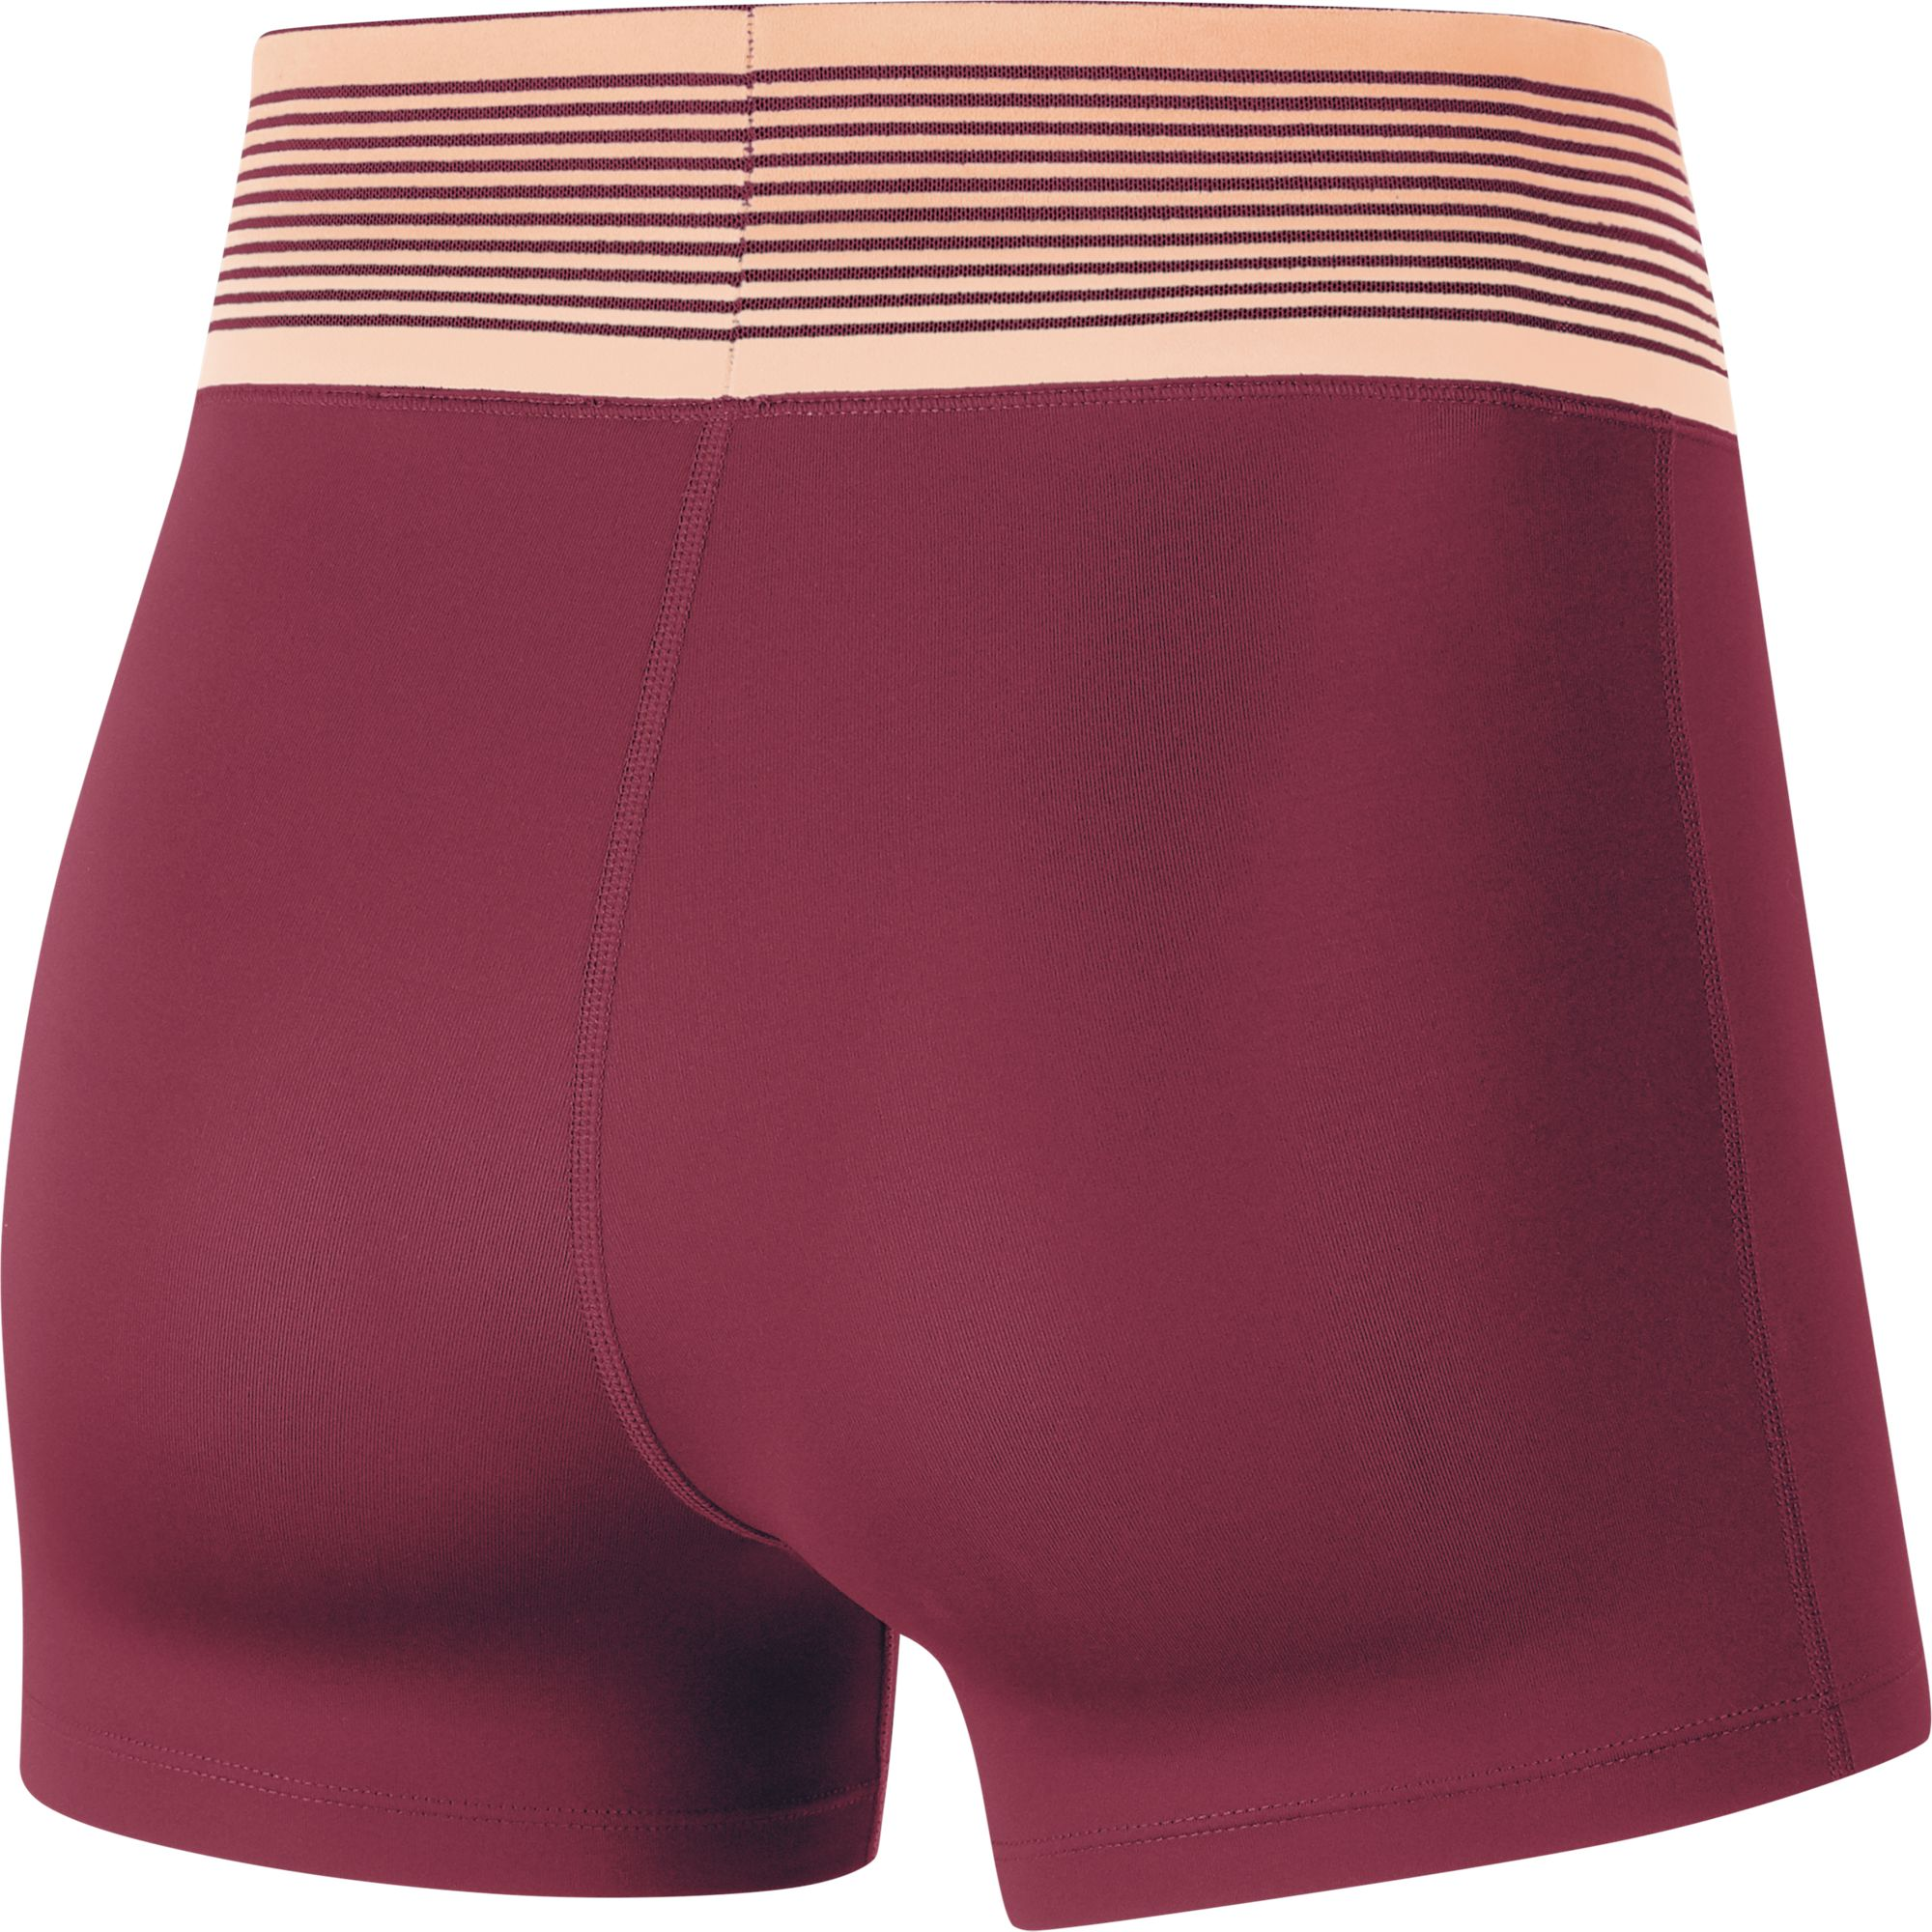 Women's Pro Shorts, Dk Red,Wine,Ruby,Burgandy, swatch